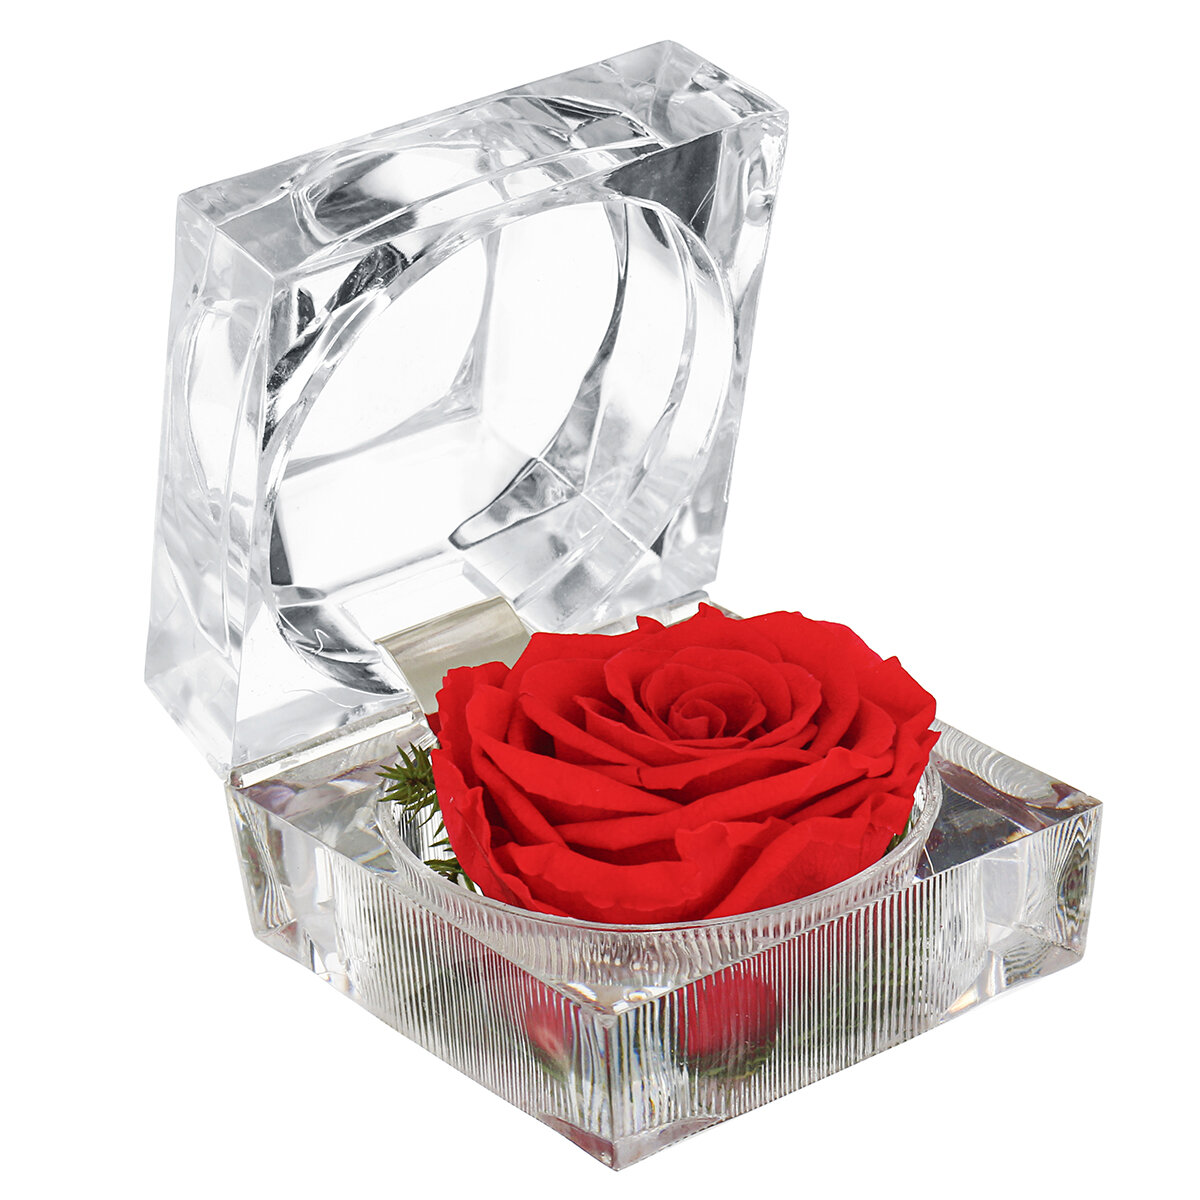 Eternal Flower Decoration Ring Box Colorful Rose Wedding Gifts Jewelry Box